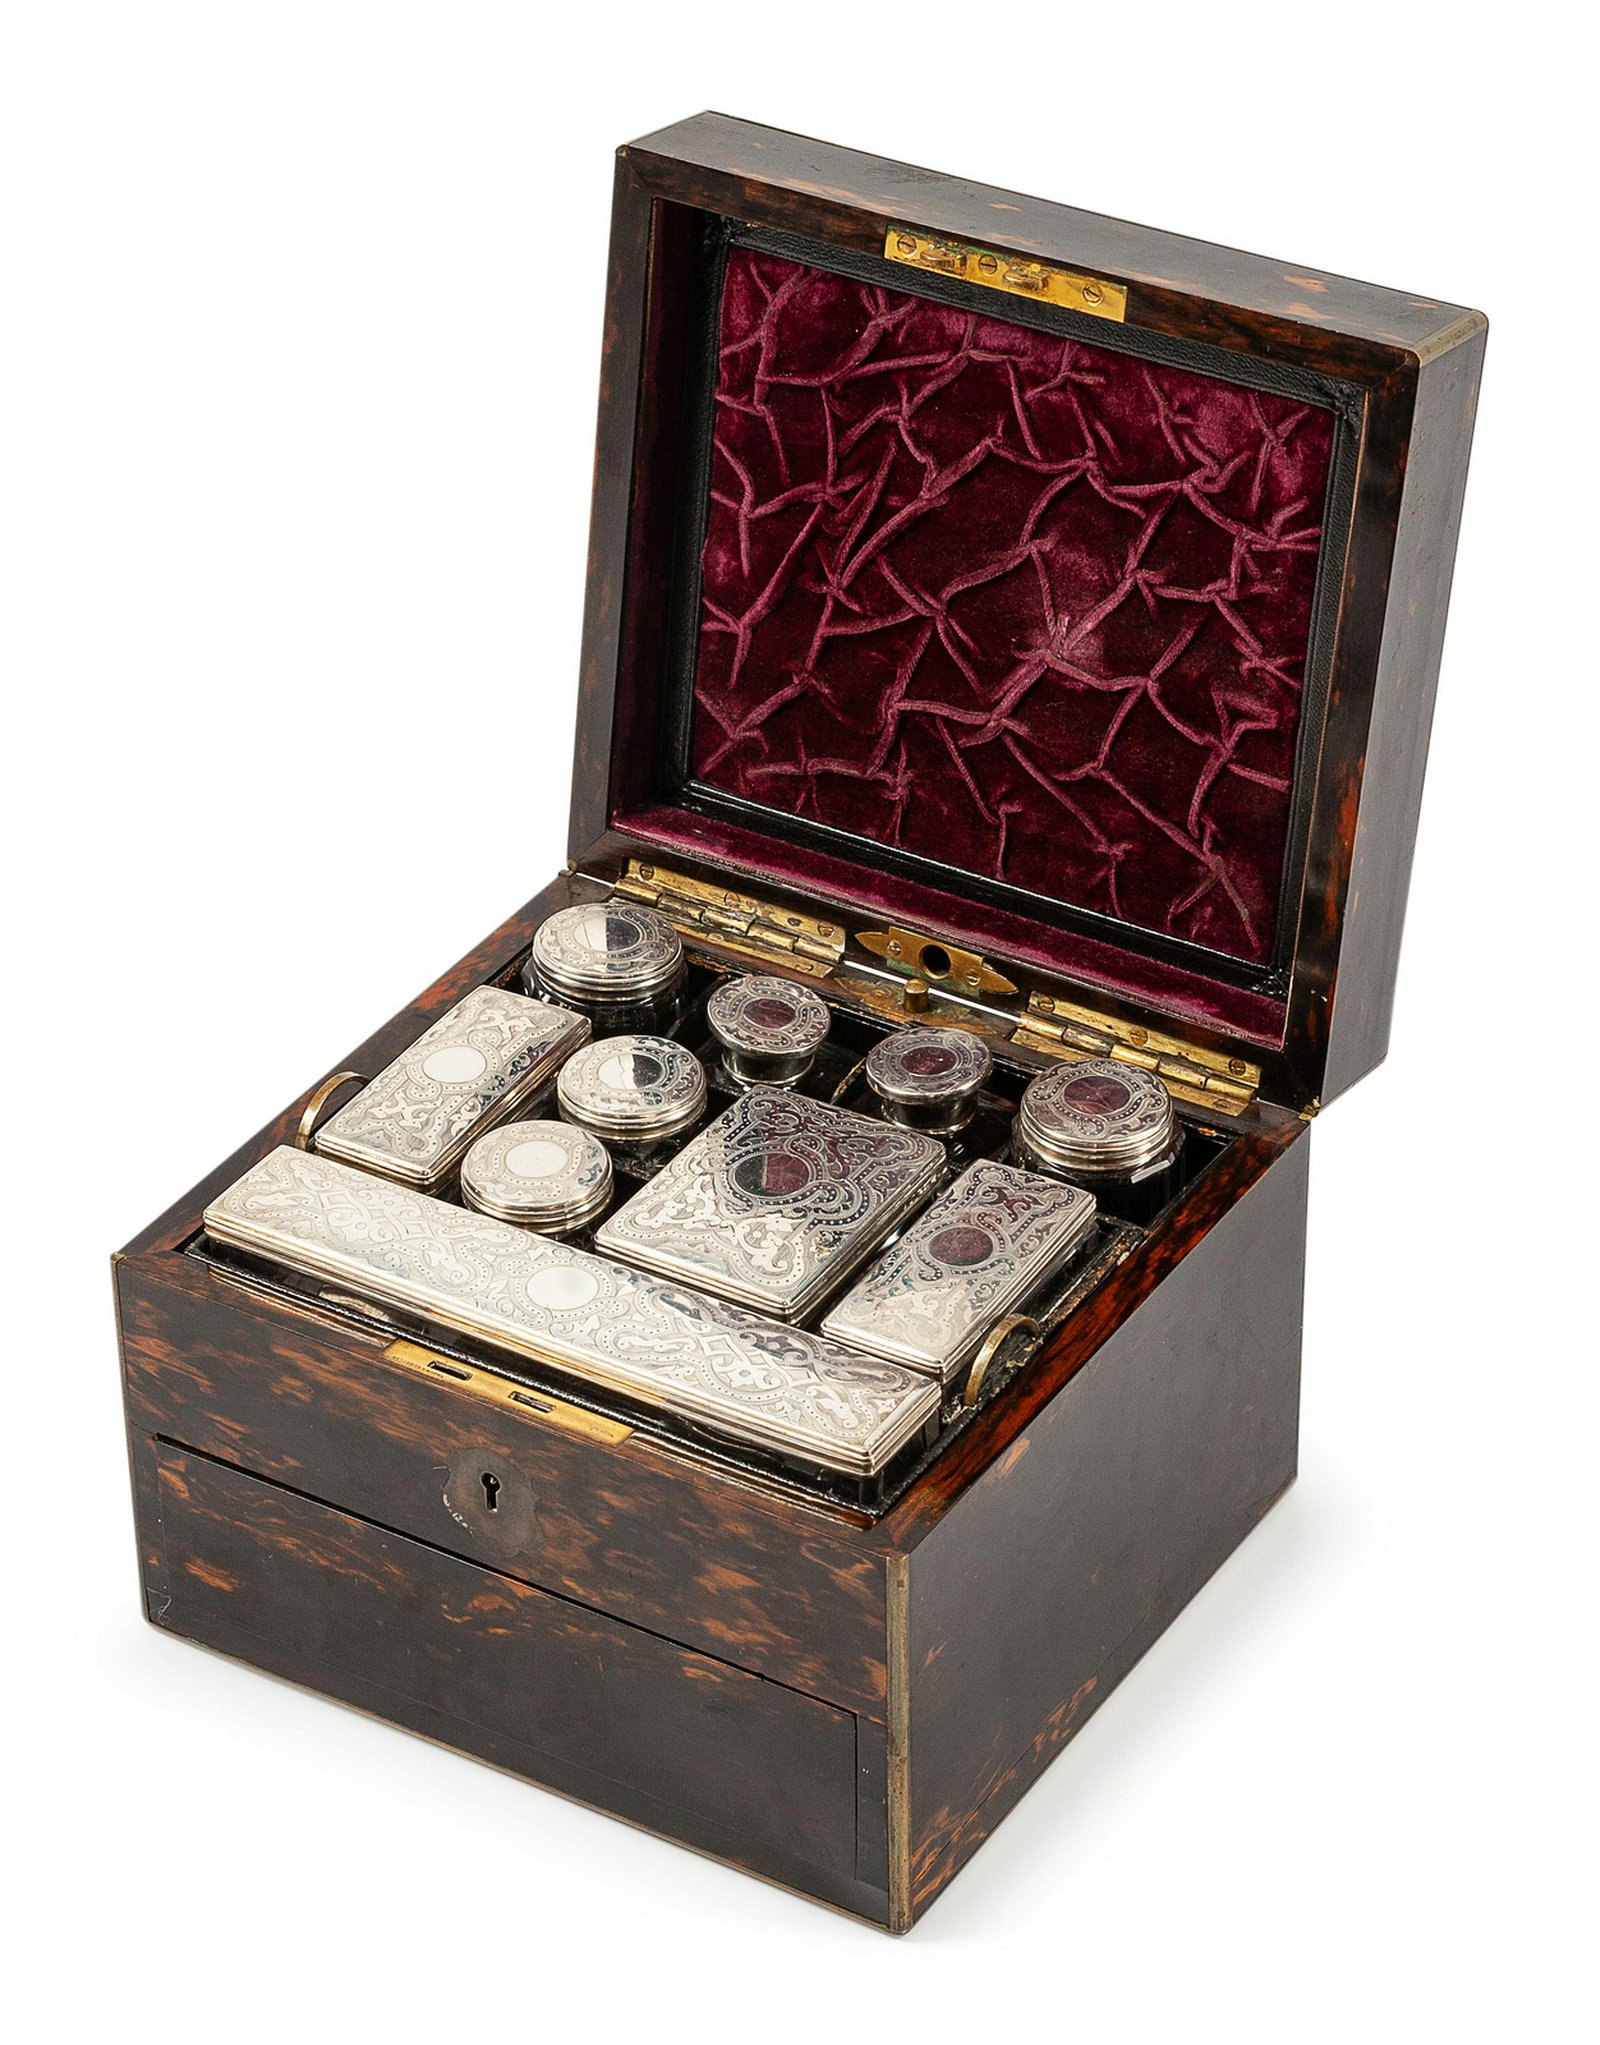 A Victorian Silver Mounted Calamander Toiletry Case